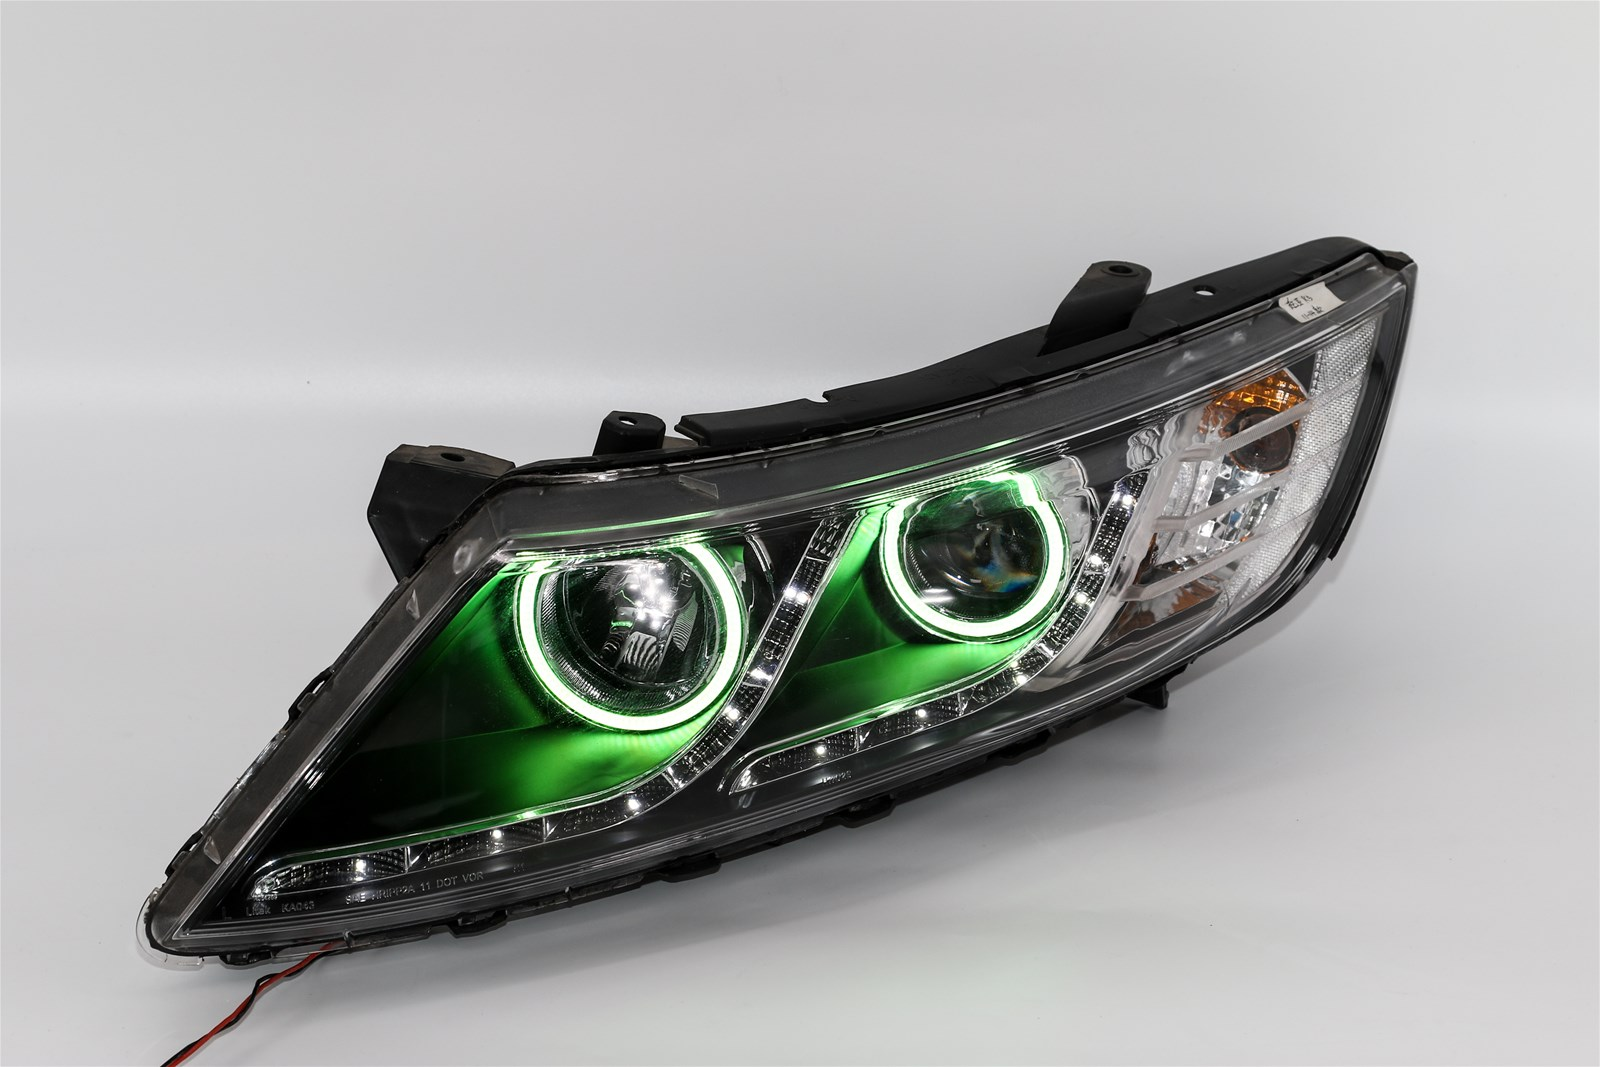 RGB angel eye for car headlight assembly